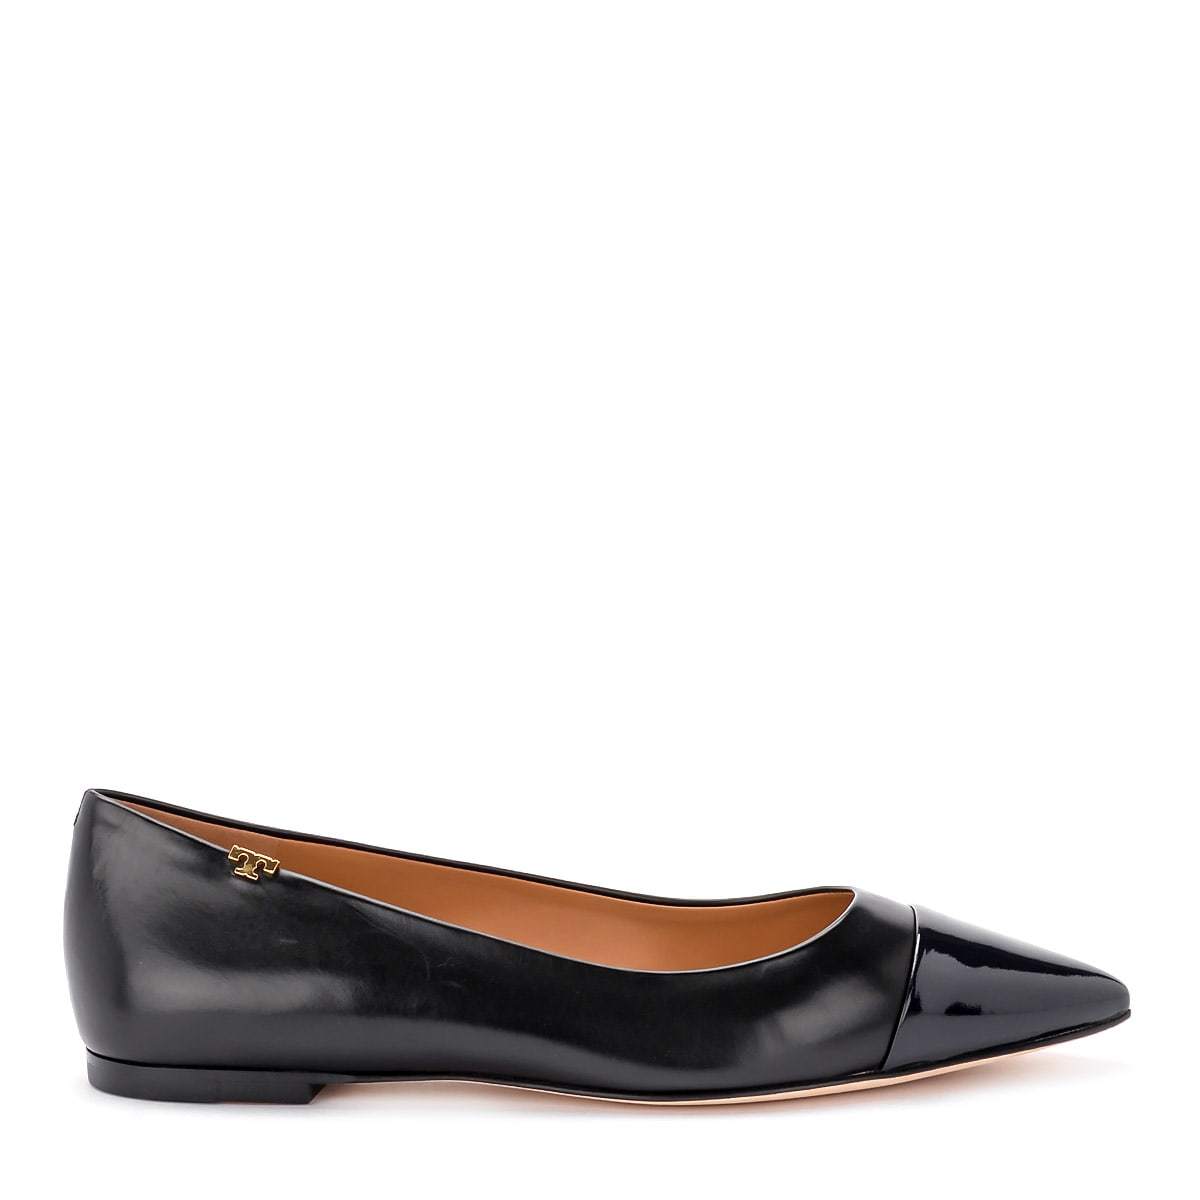 Tory Burch Penelope Black Nappa Flat Shoes With Blue Toe